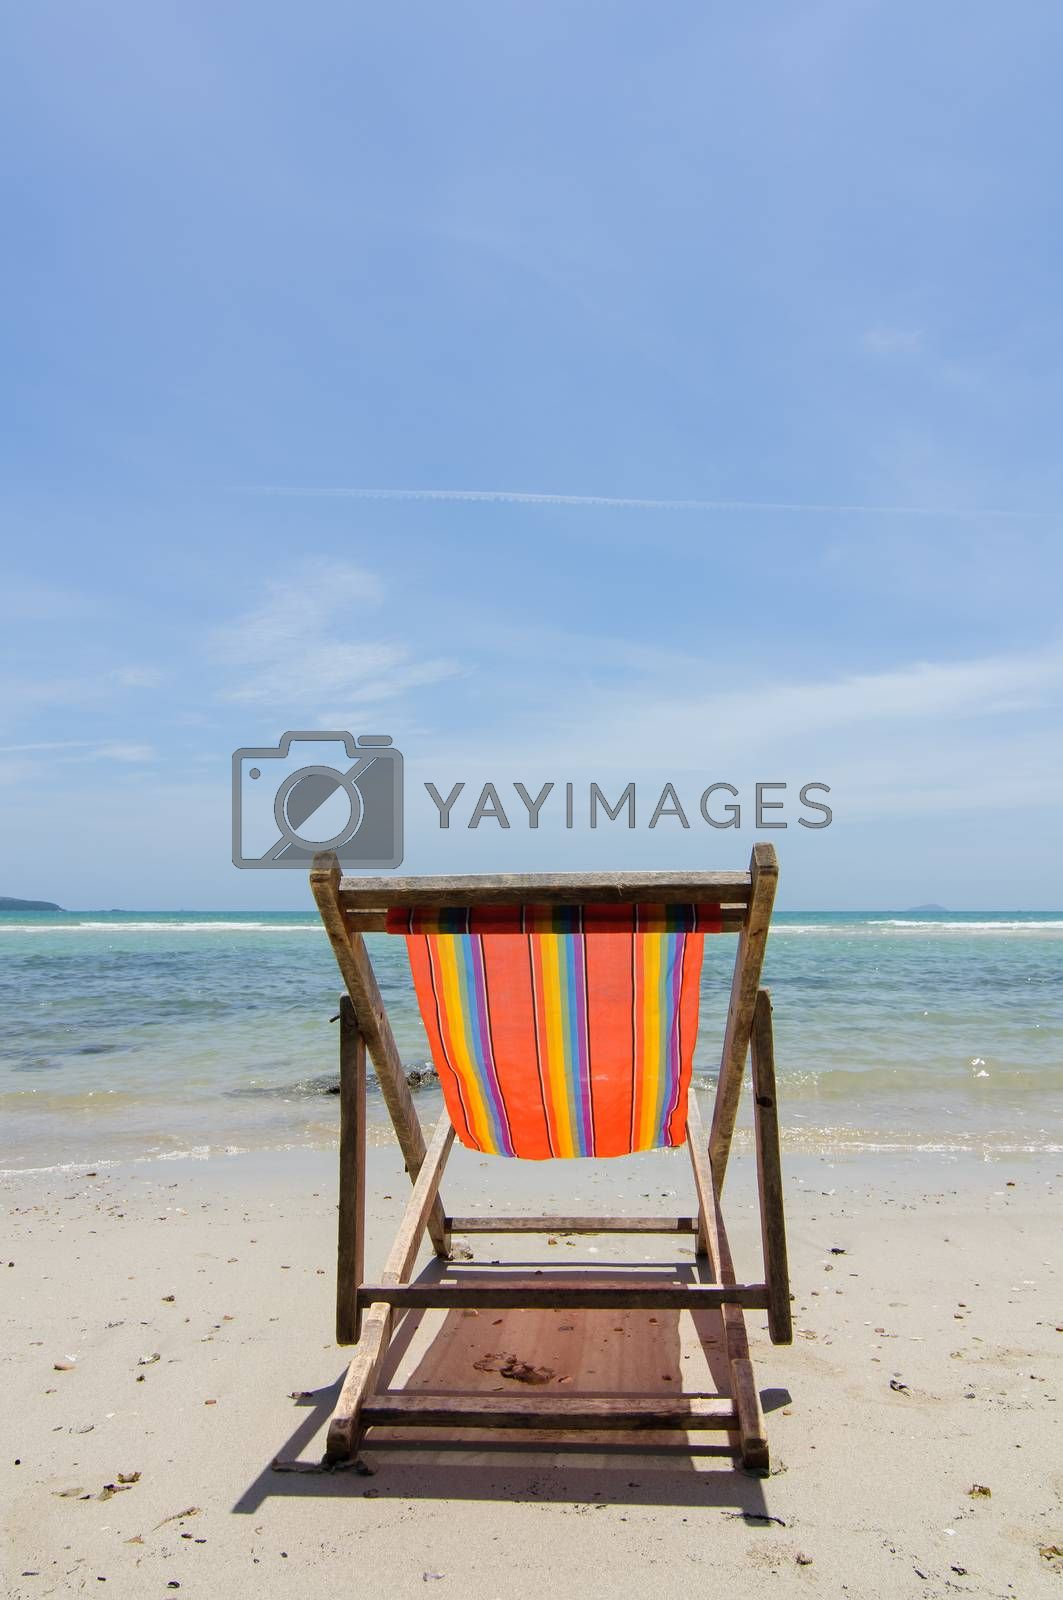 Royalty free image of The beach with a chair by Sorapop